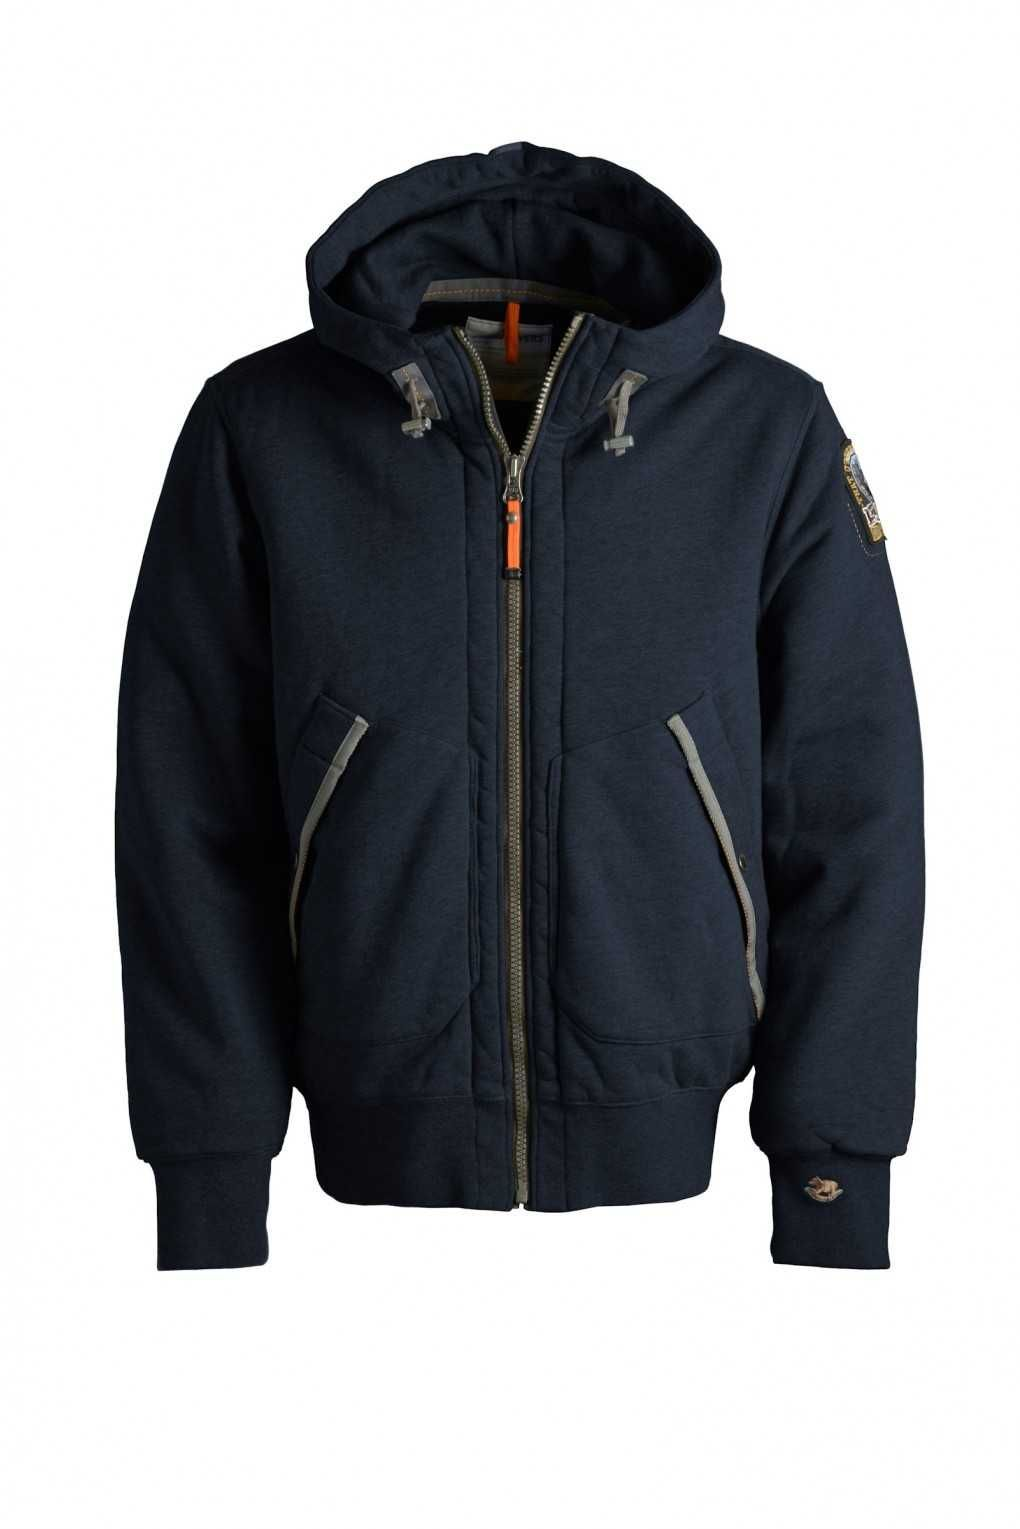 Parajumpers Jacket Wikipedia Factory Outlet,Big Discount From Original Parajumper Long Bear UK! Wholesale